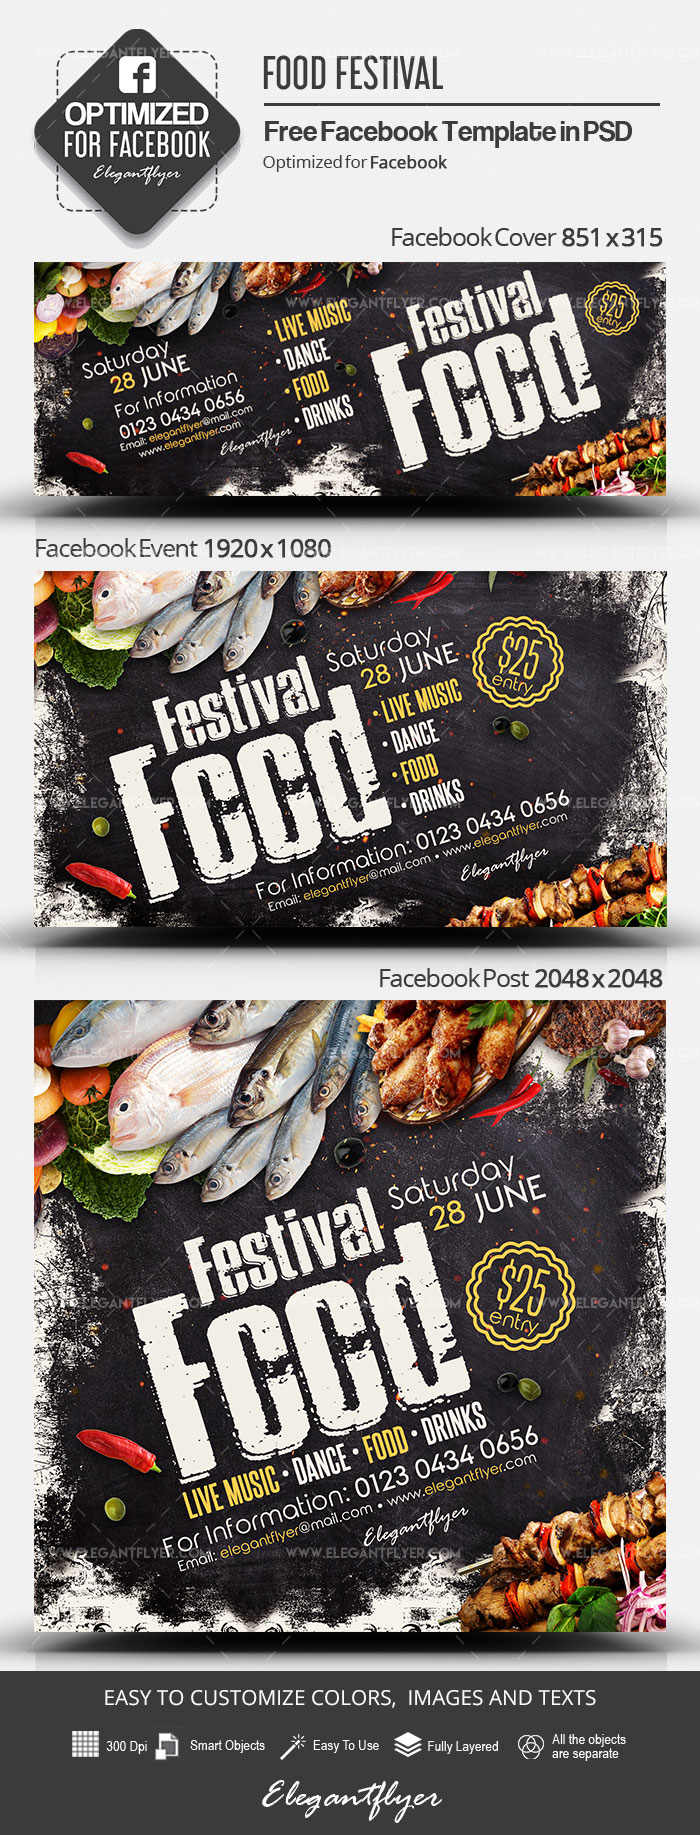 Food Festival – Free Facebook Cover Template in PSD + Post + Event cover